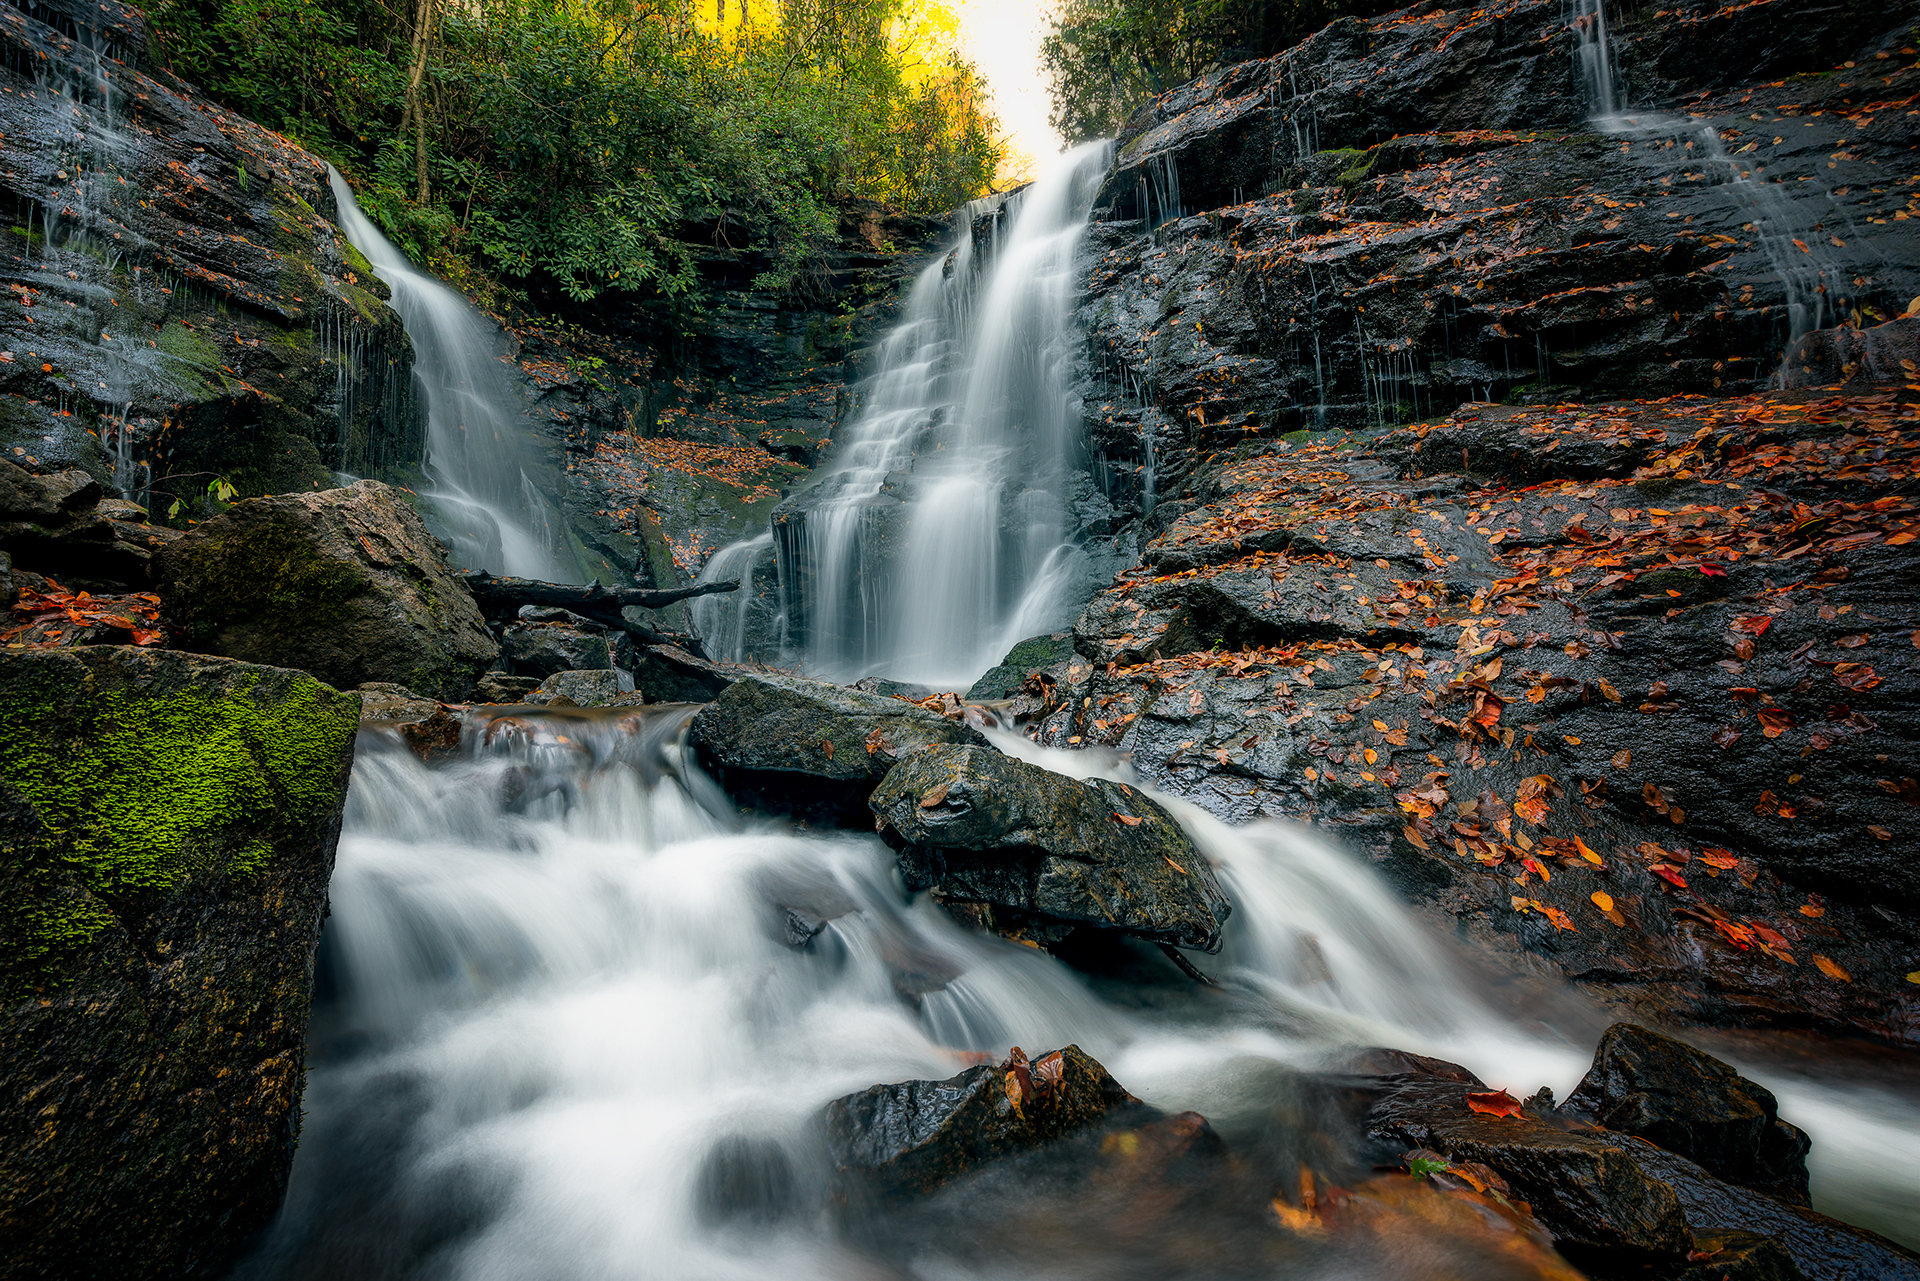 Autumn at Soco Falls Redux